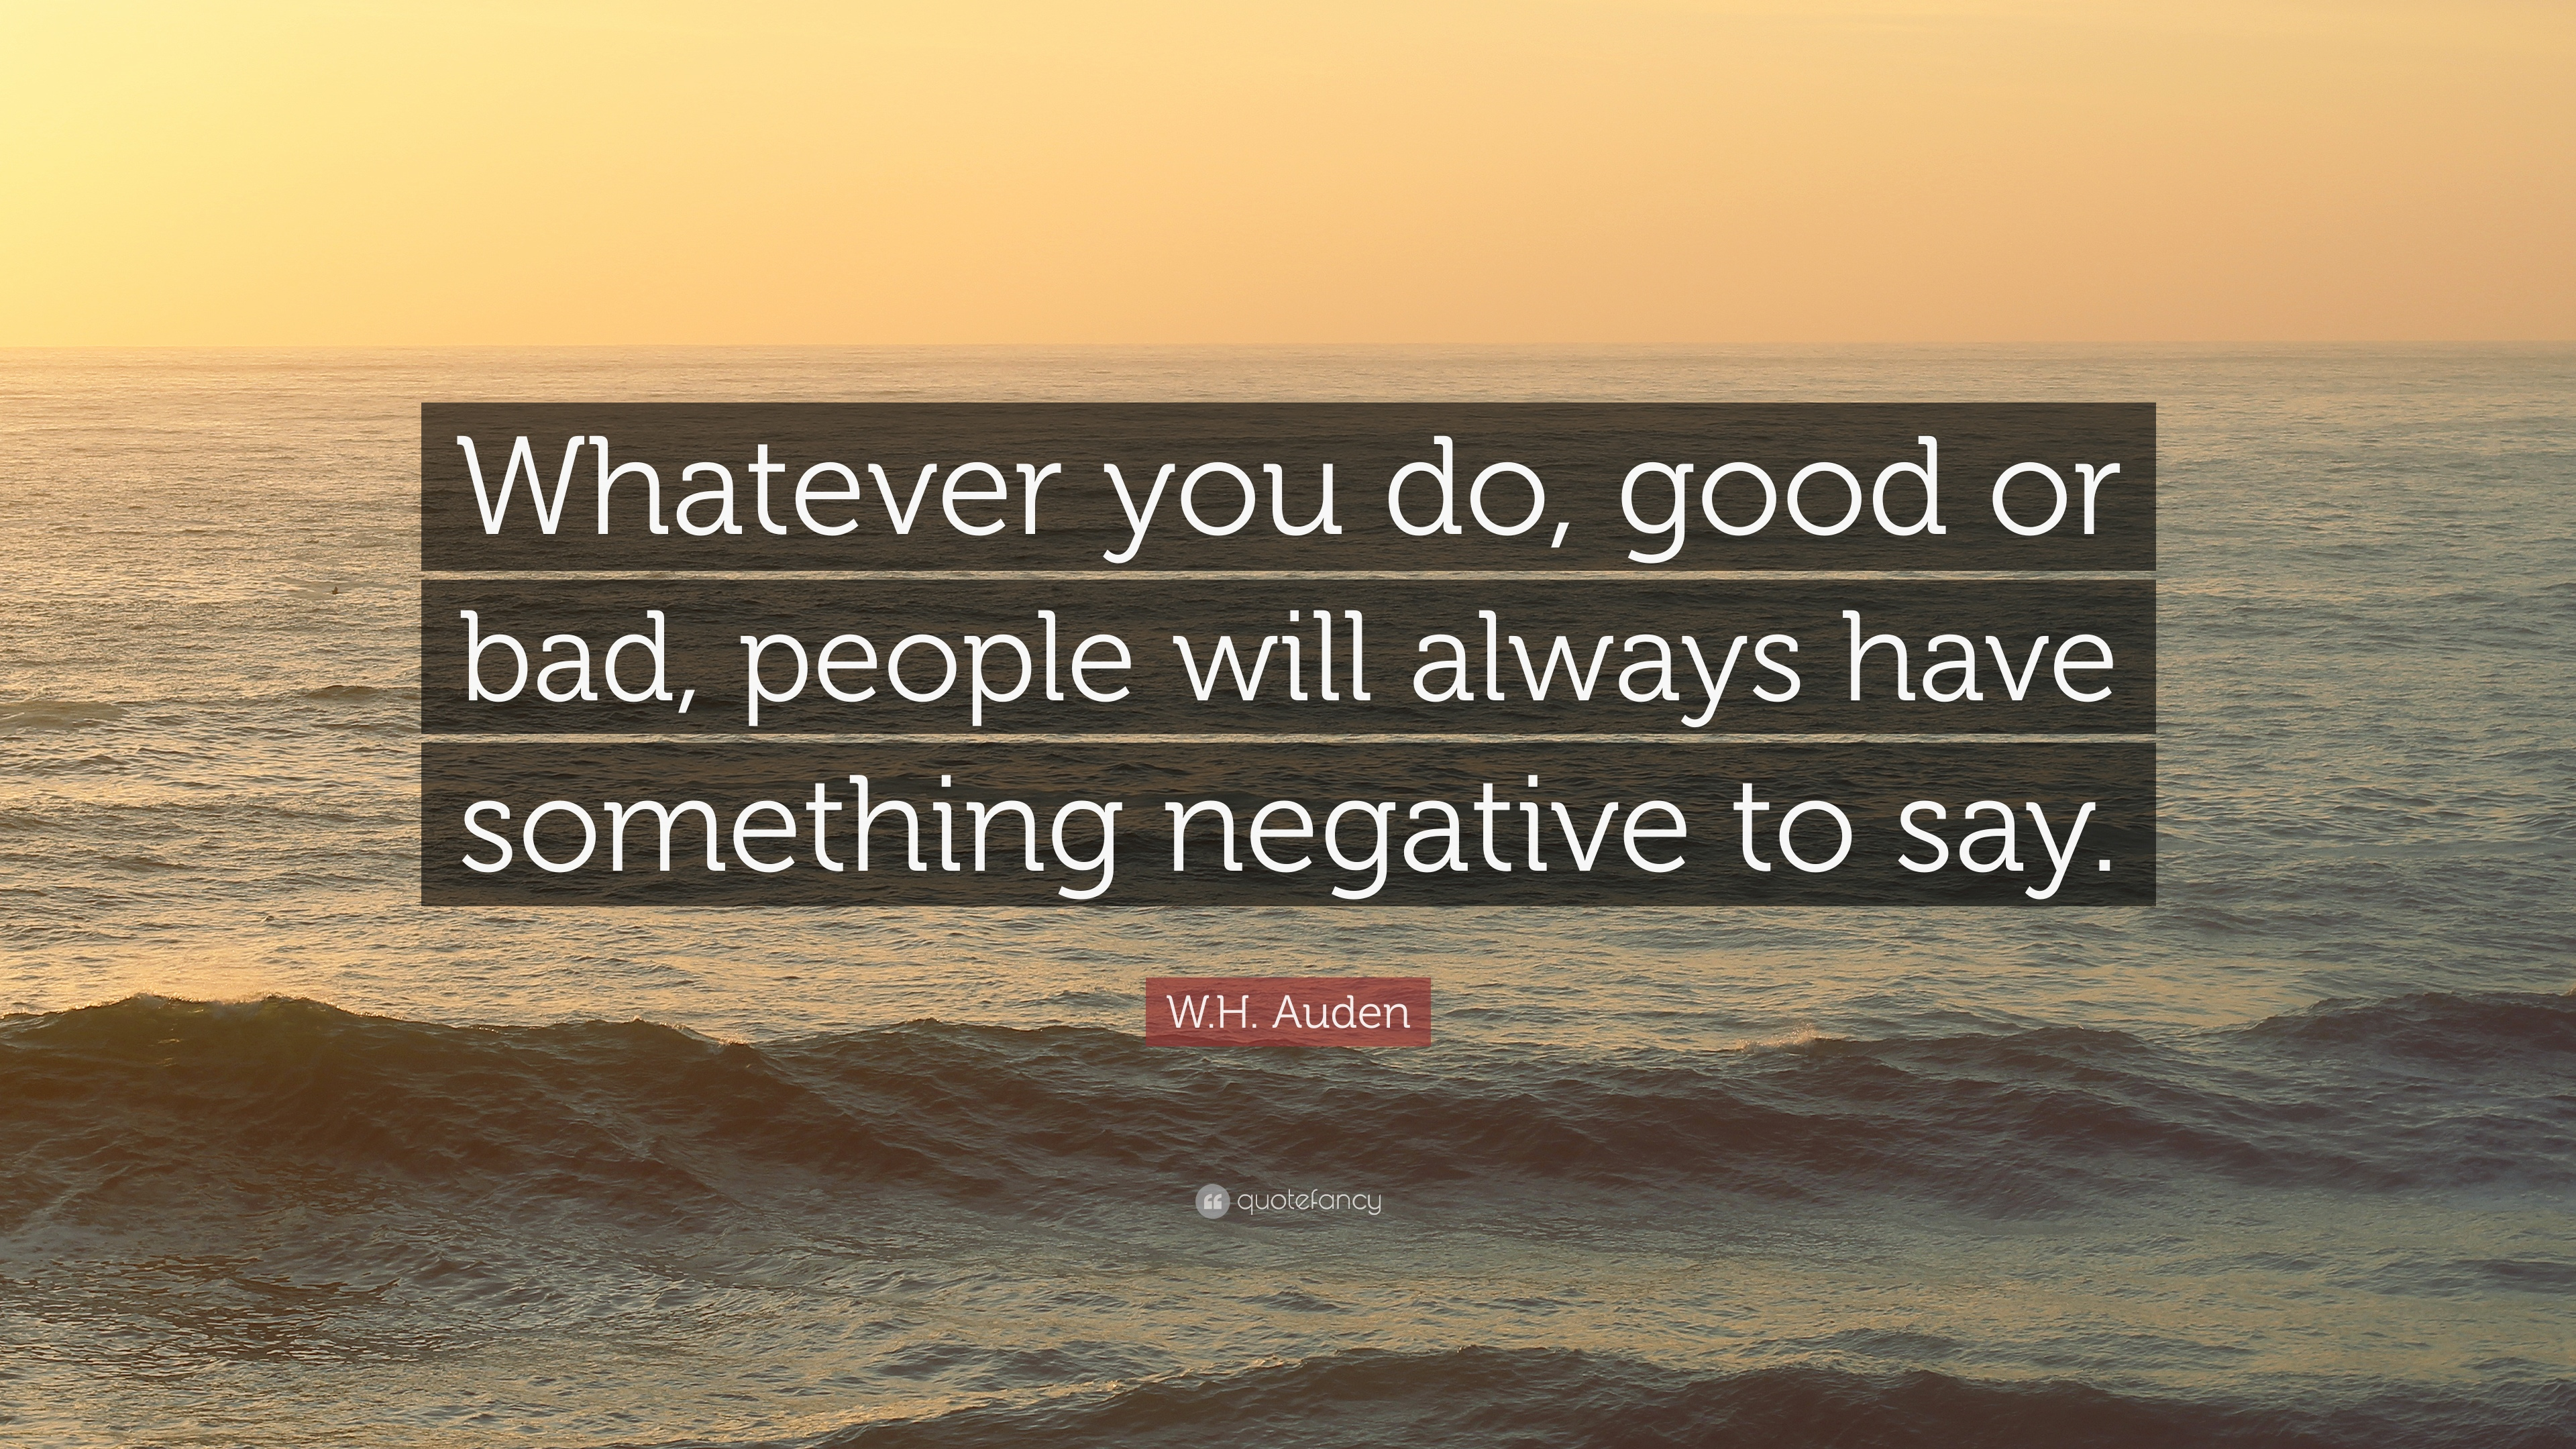 W.H. Auden Quote: Whatever you do, good or bad, people